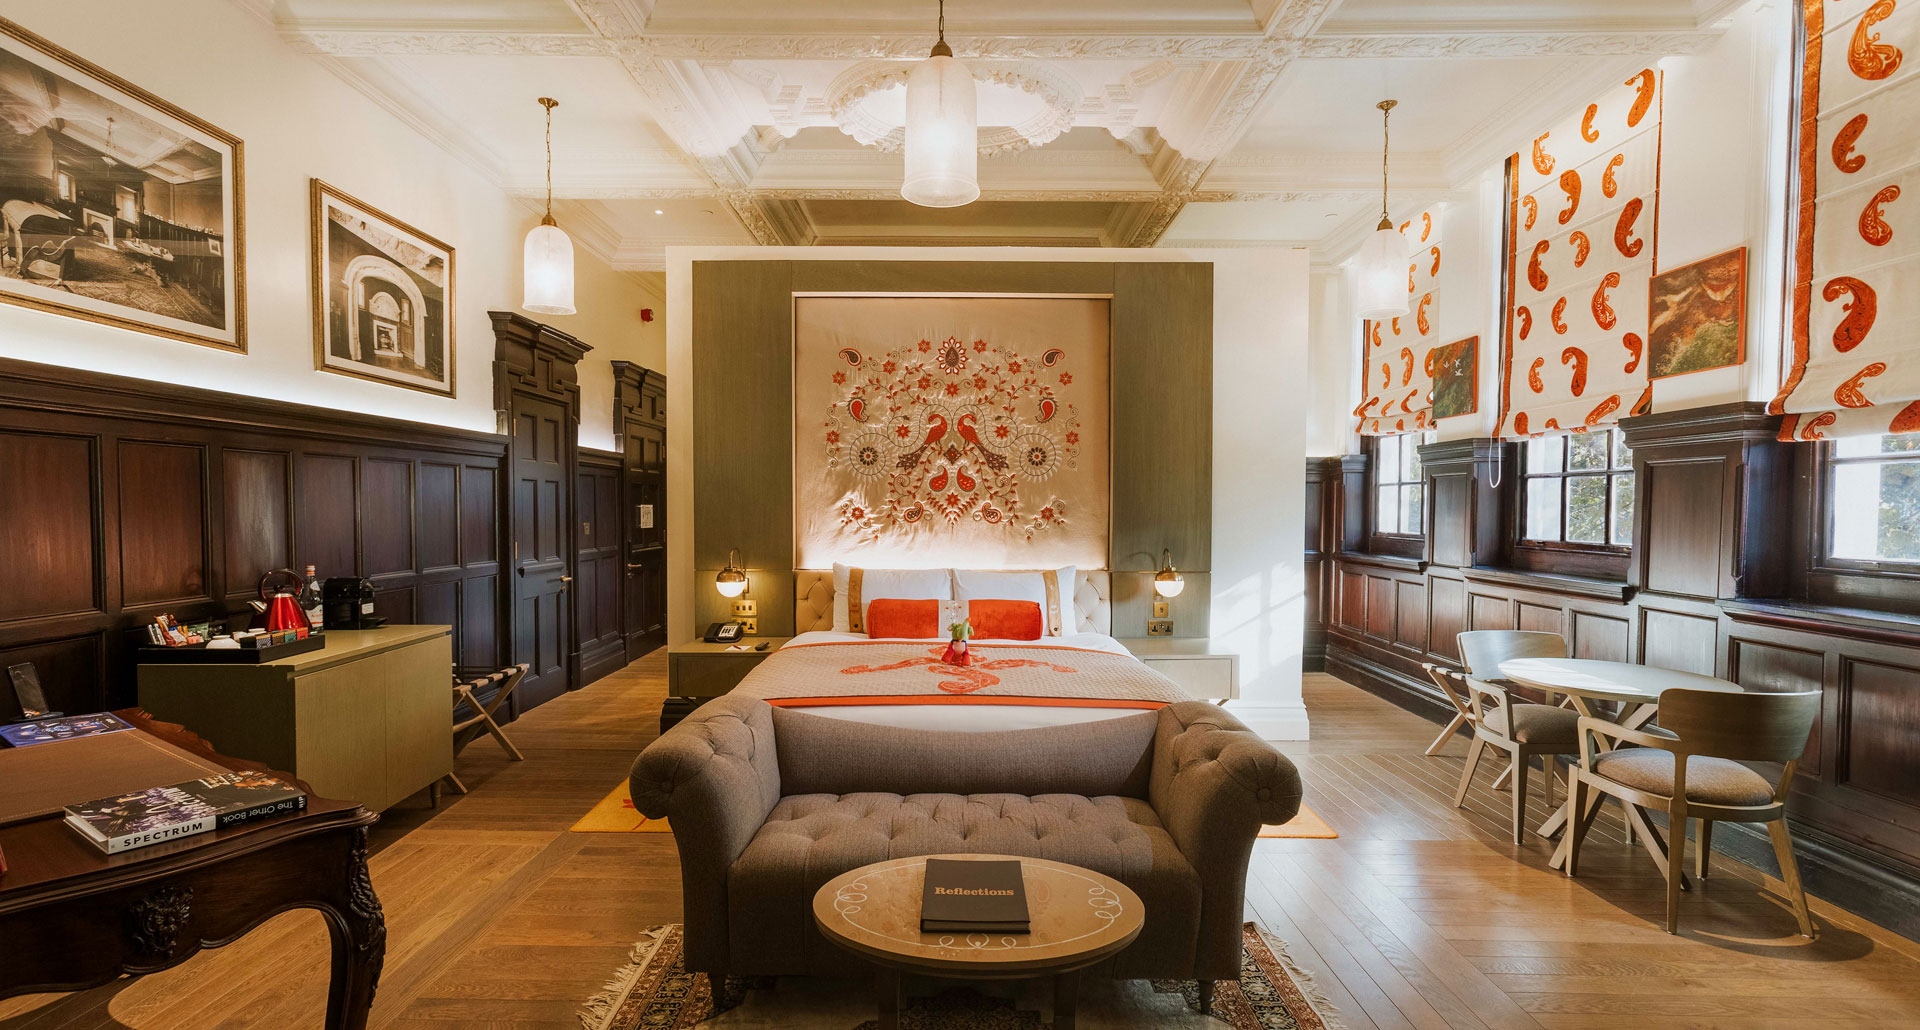 The Lalit - Boutique Hotel in London